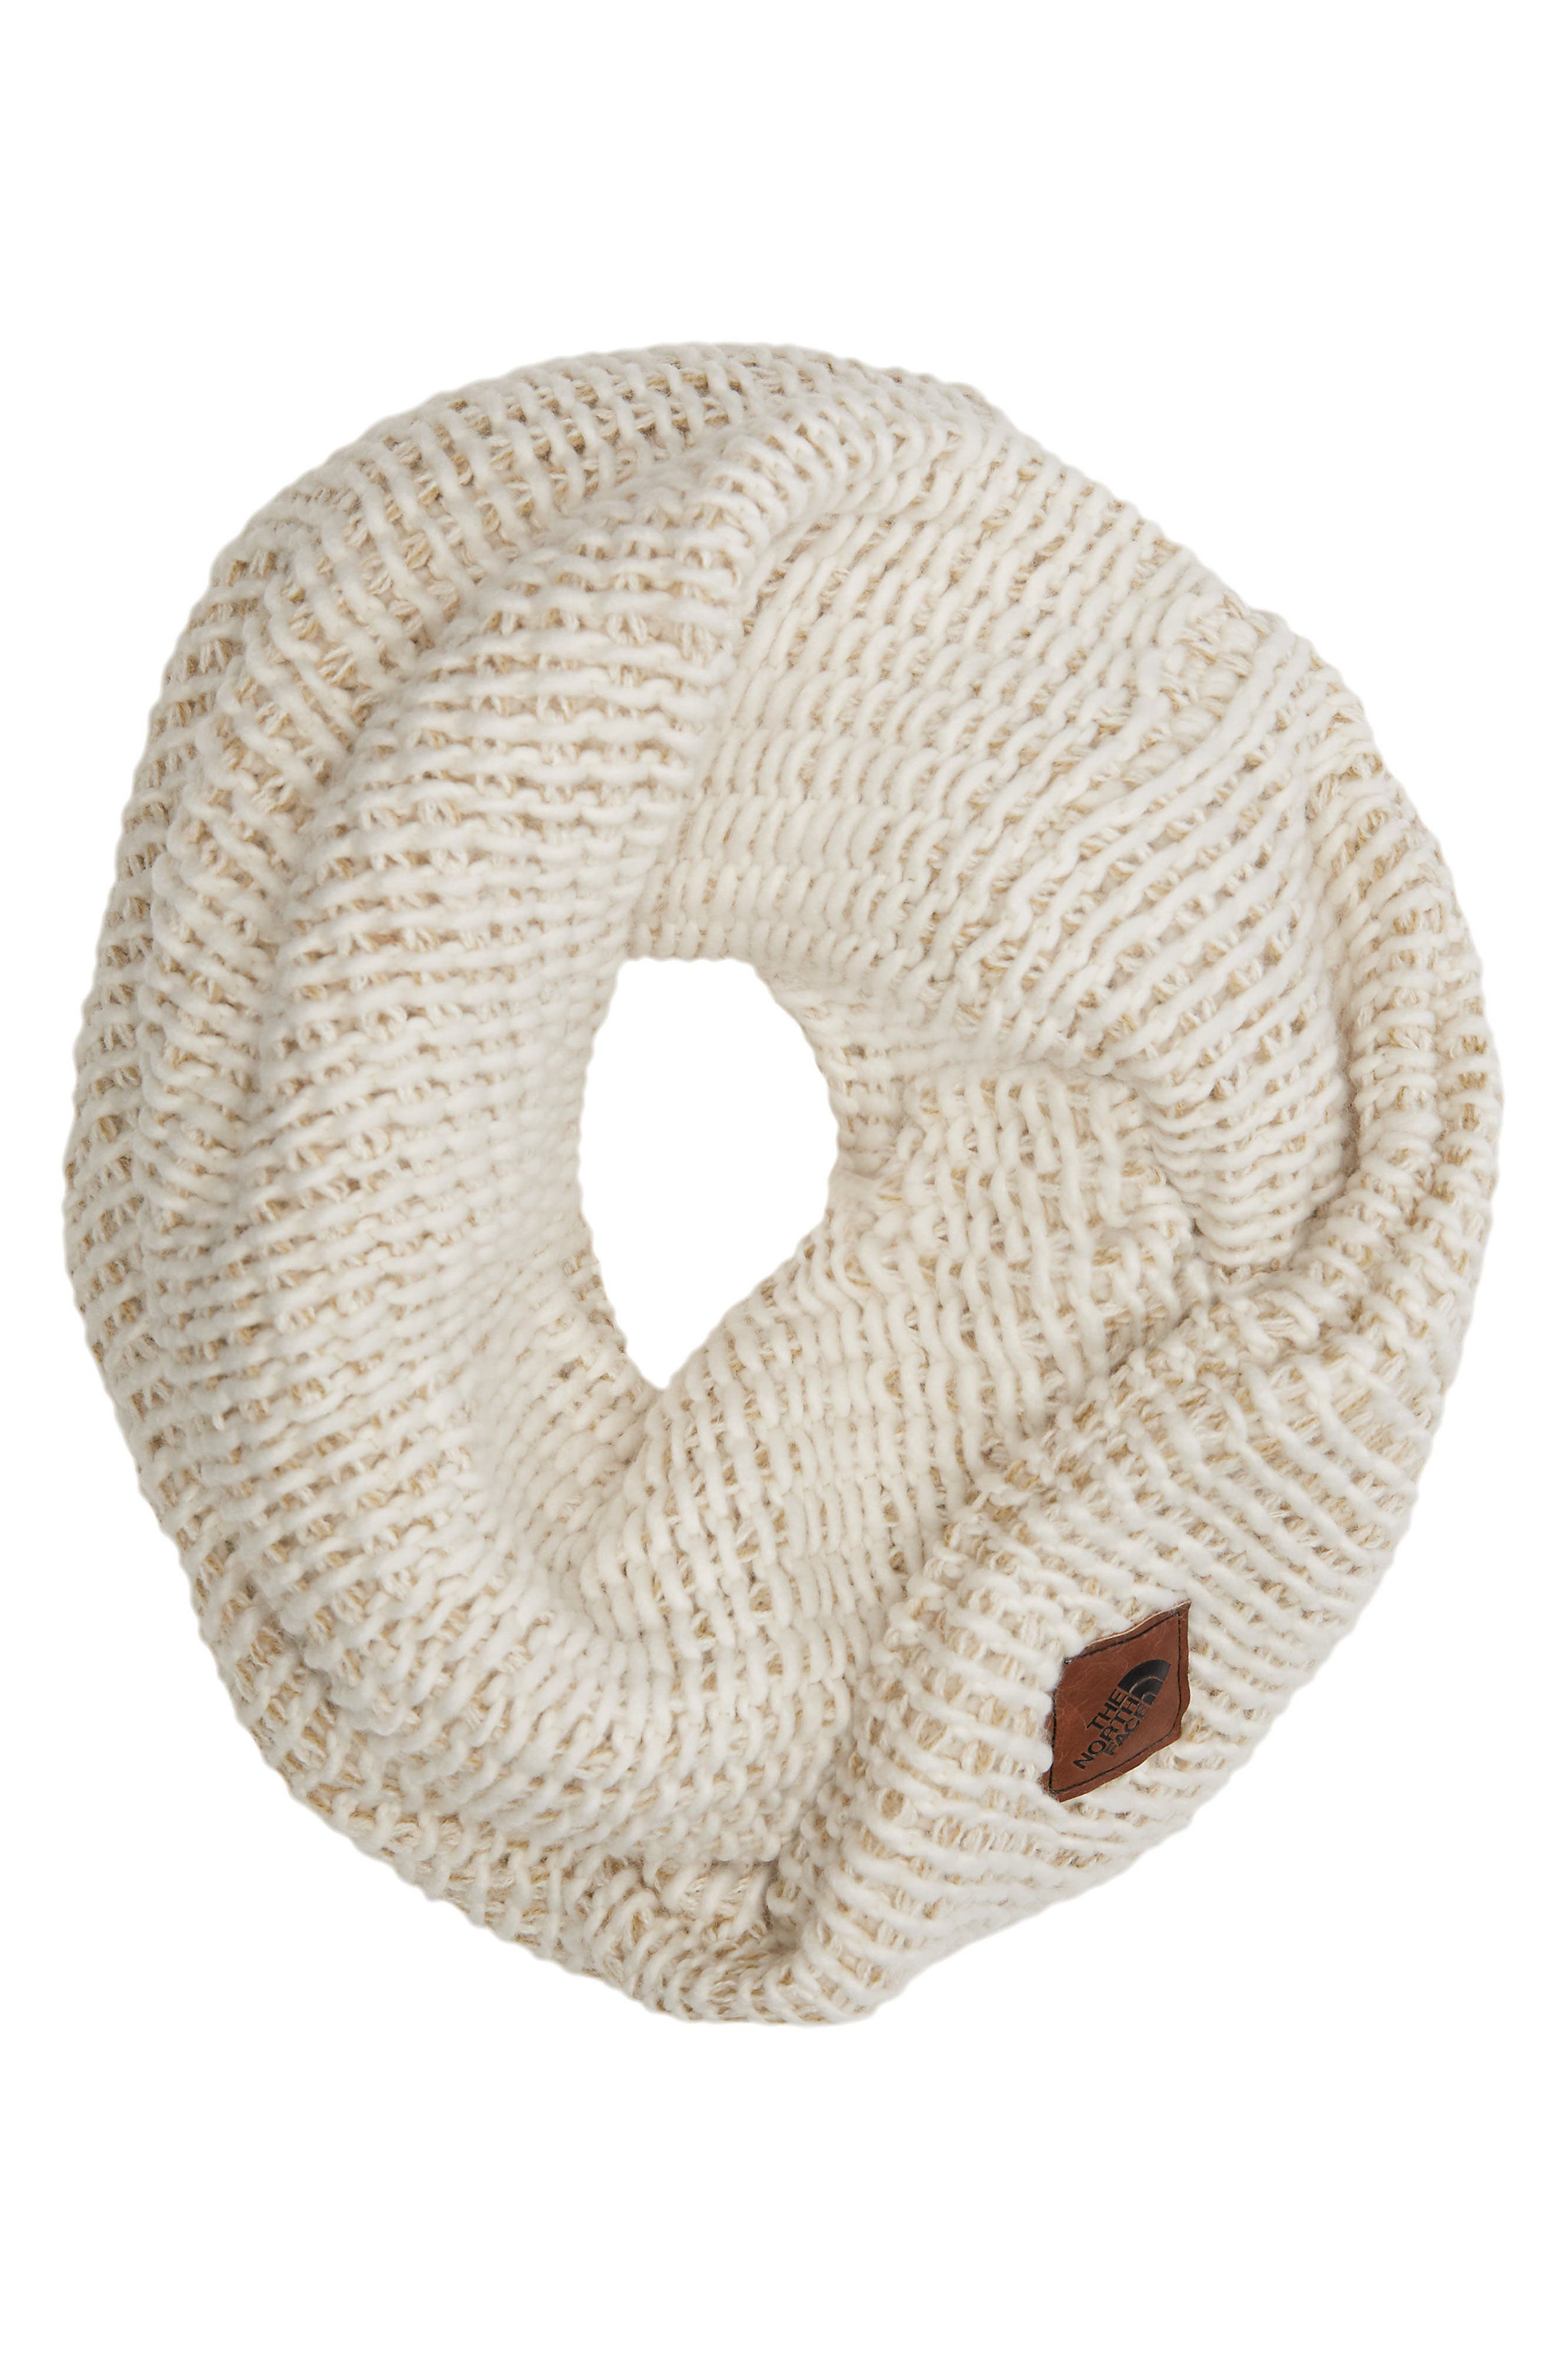 The North Face Infinity Scarf